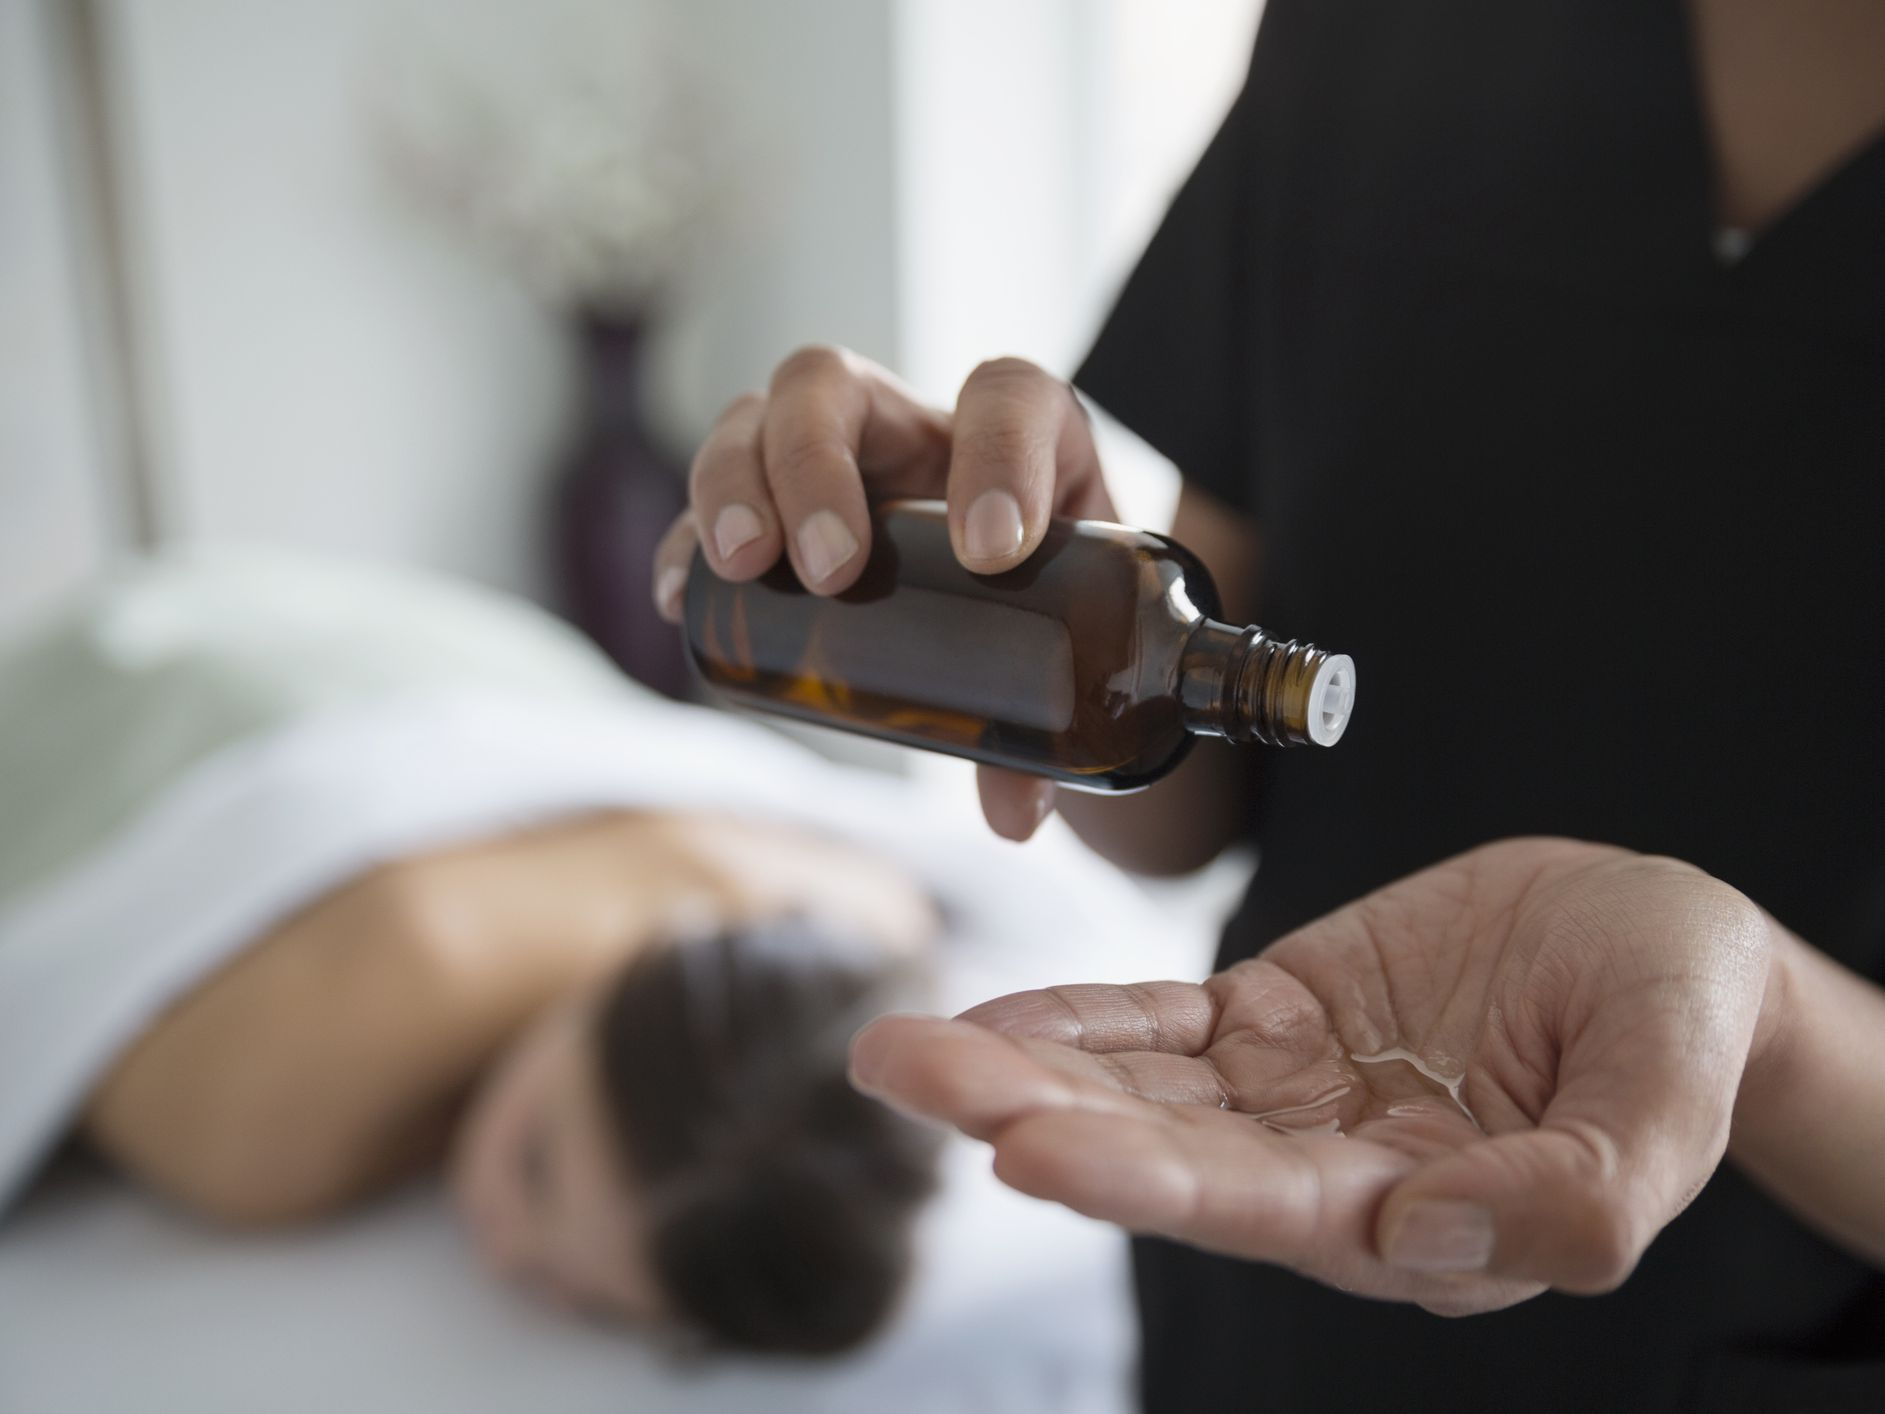 5 Best Massage Oils According to Massage Therapists